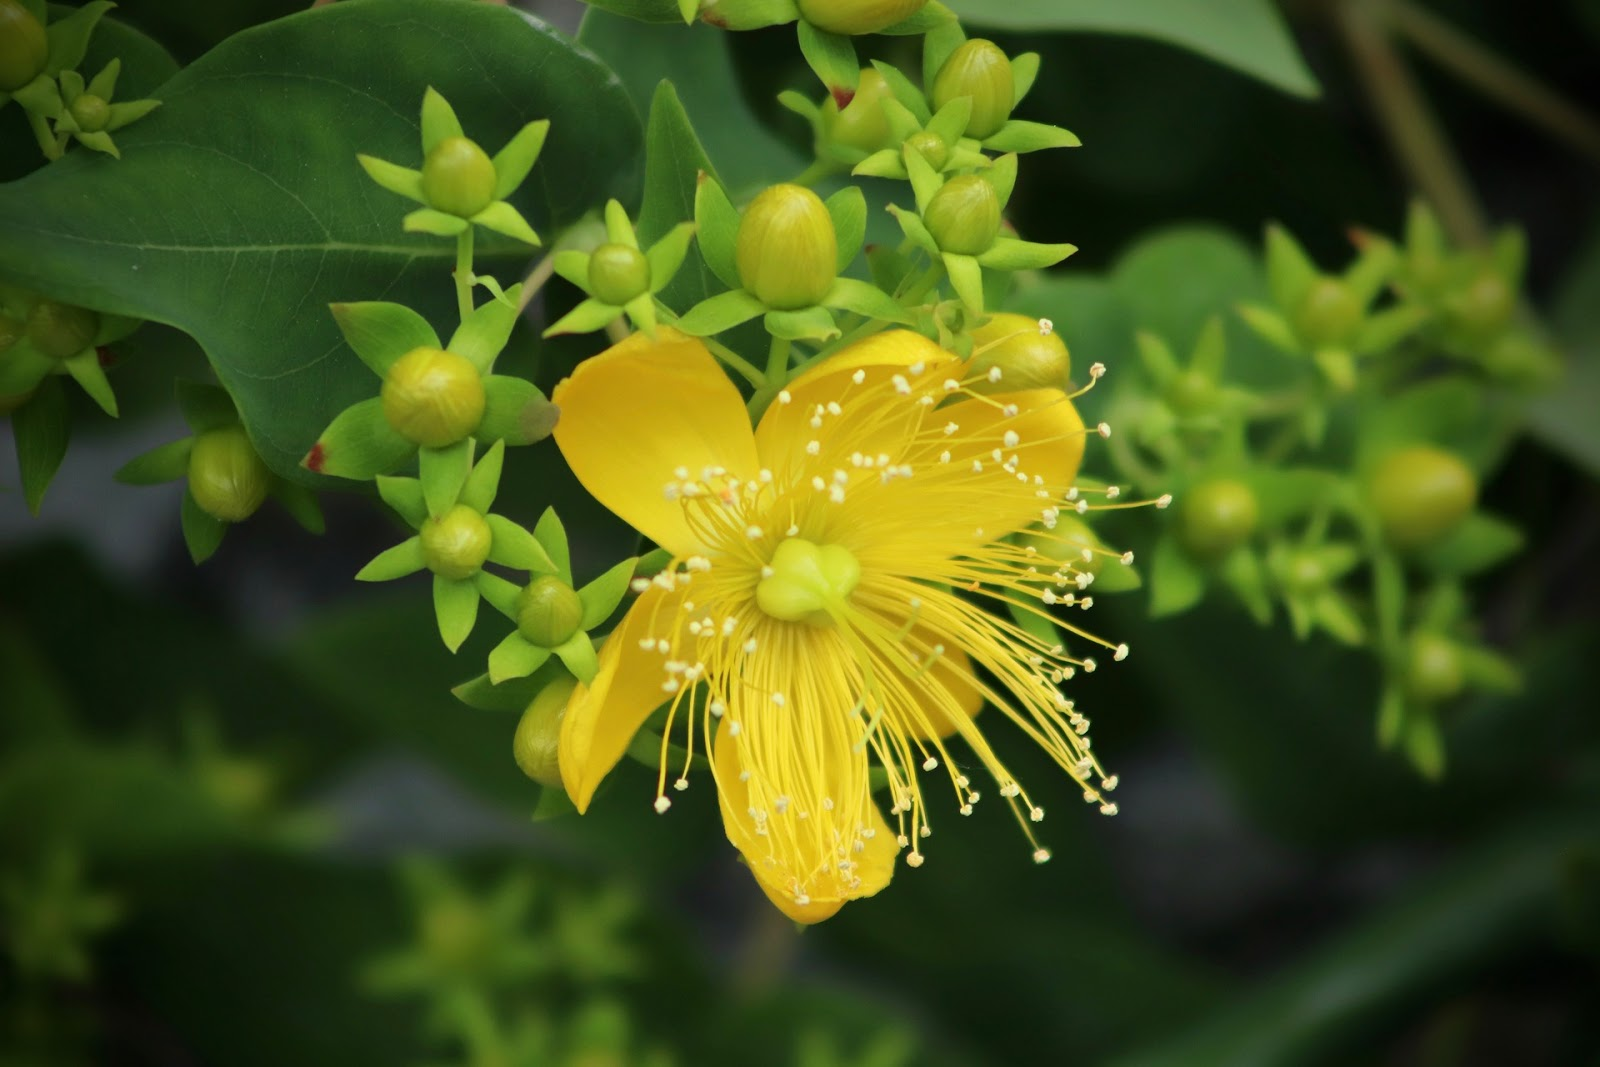 Menopause supplements: St. John's wort